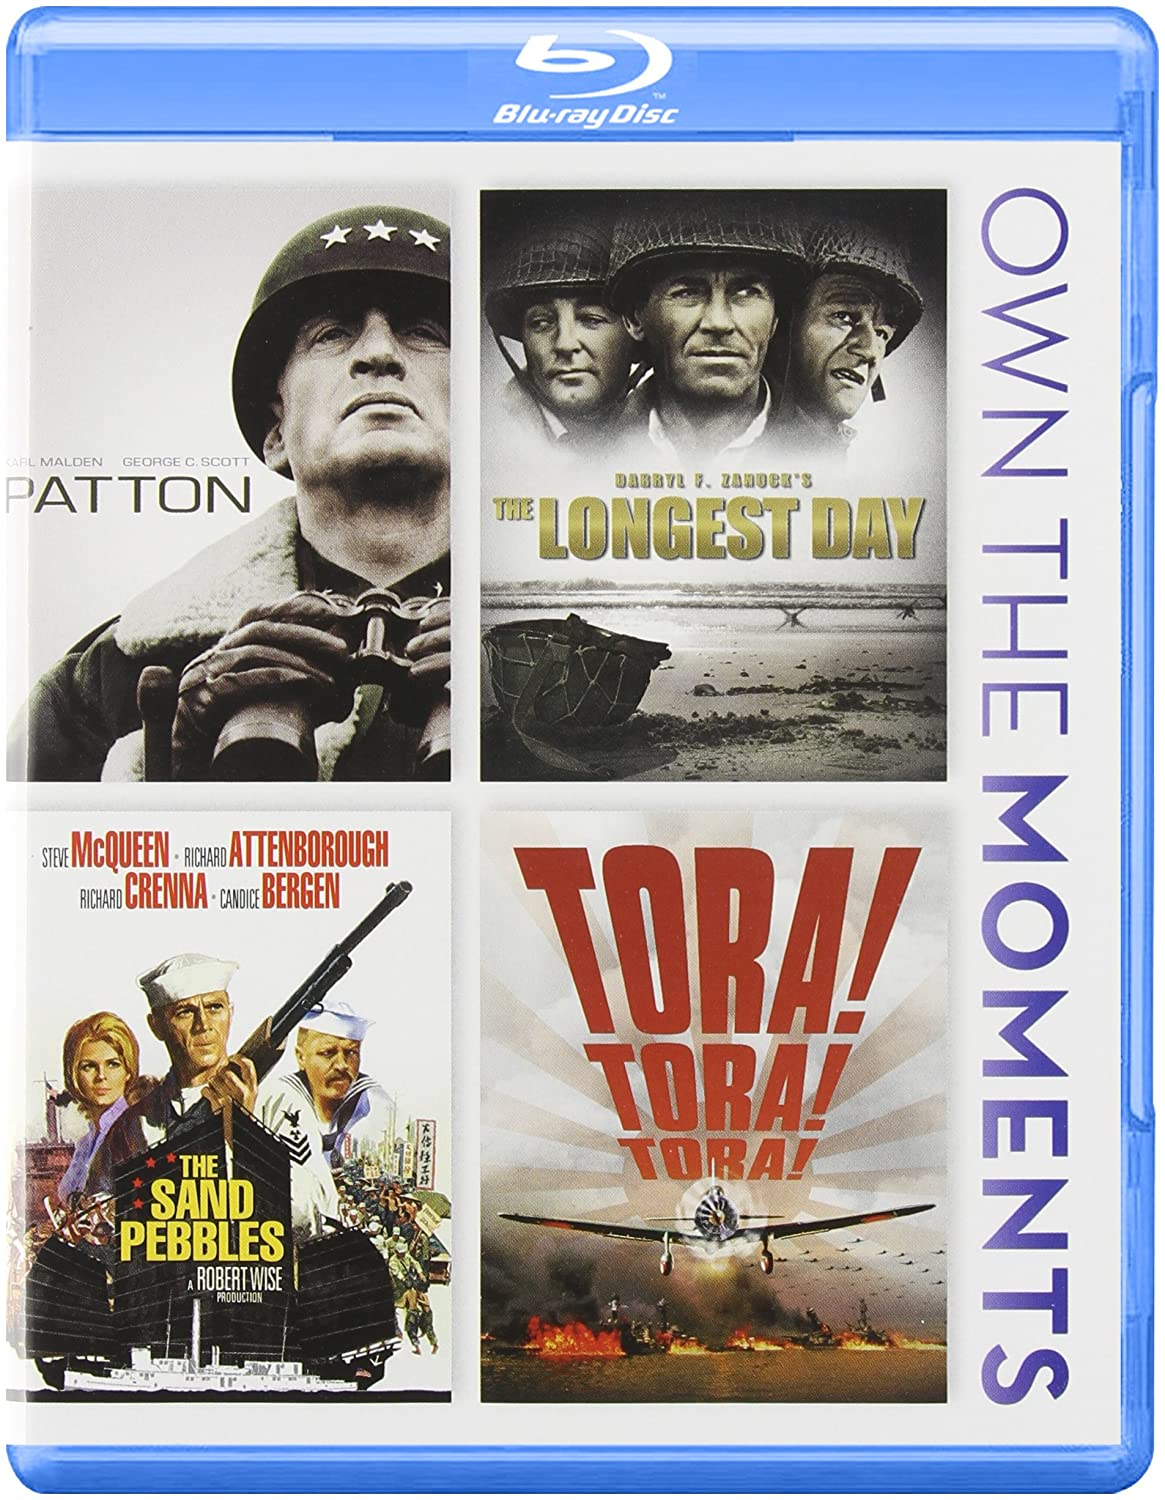 Patton / The Longest Day / The Sand Pebbles / Tora! Tora! Tora! Quadruple Feature Blu-ray